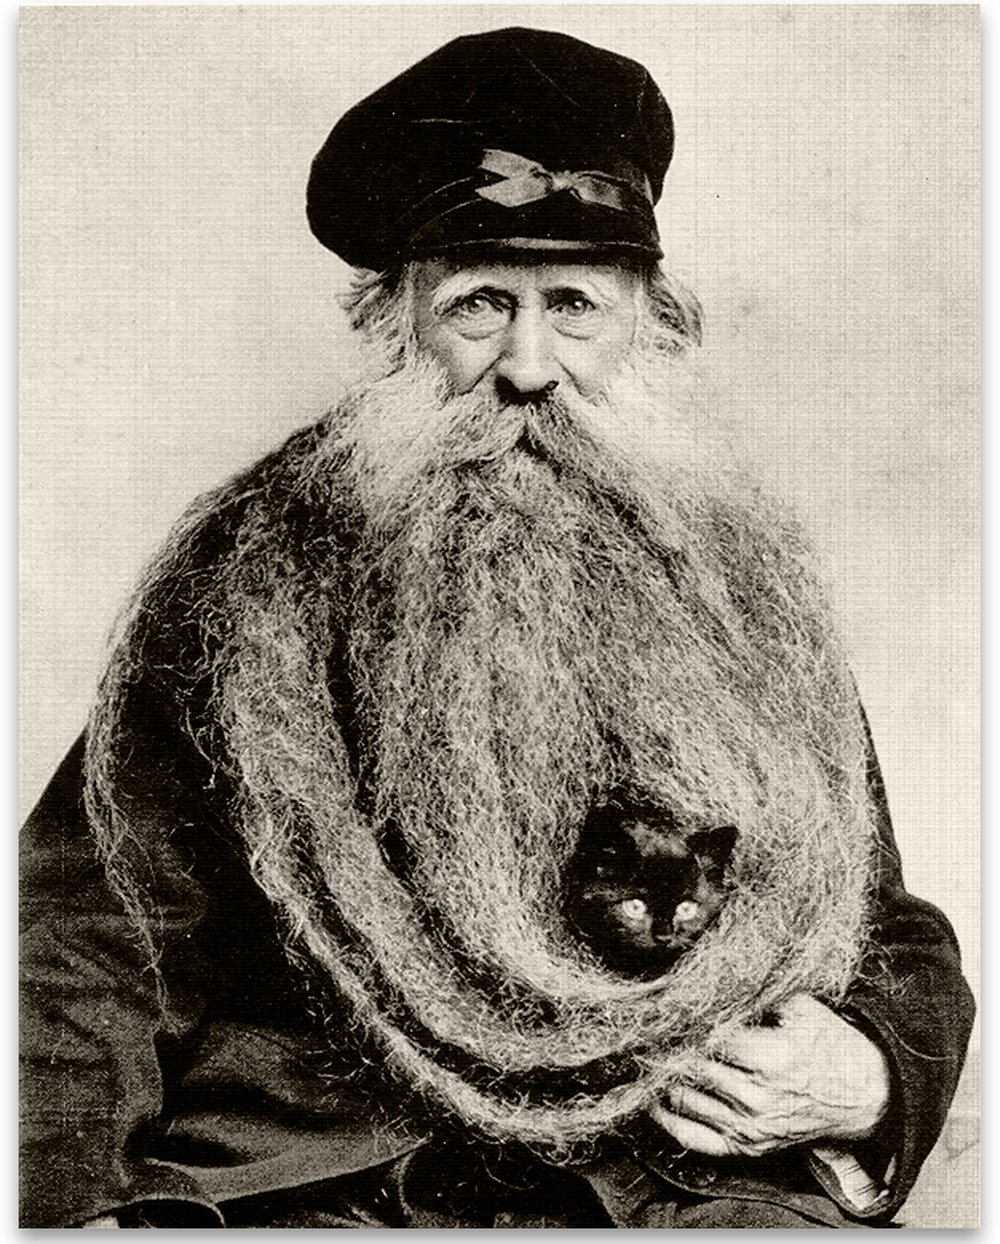 Lone Star Art Kitten Hiding in Old Mans Giant Beard Bizarre Strange Weird Vintage Photo - 11x14 Unframed Print - Perfect Vintage Home Decor